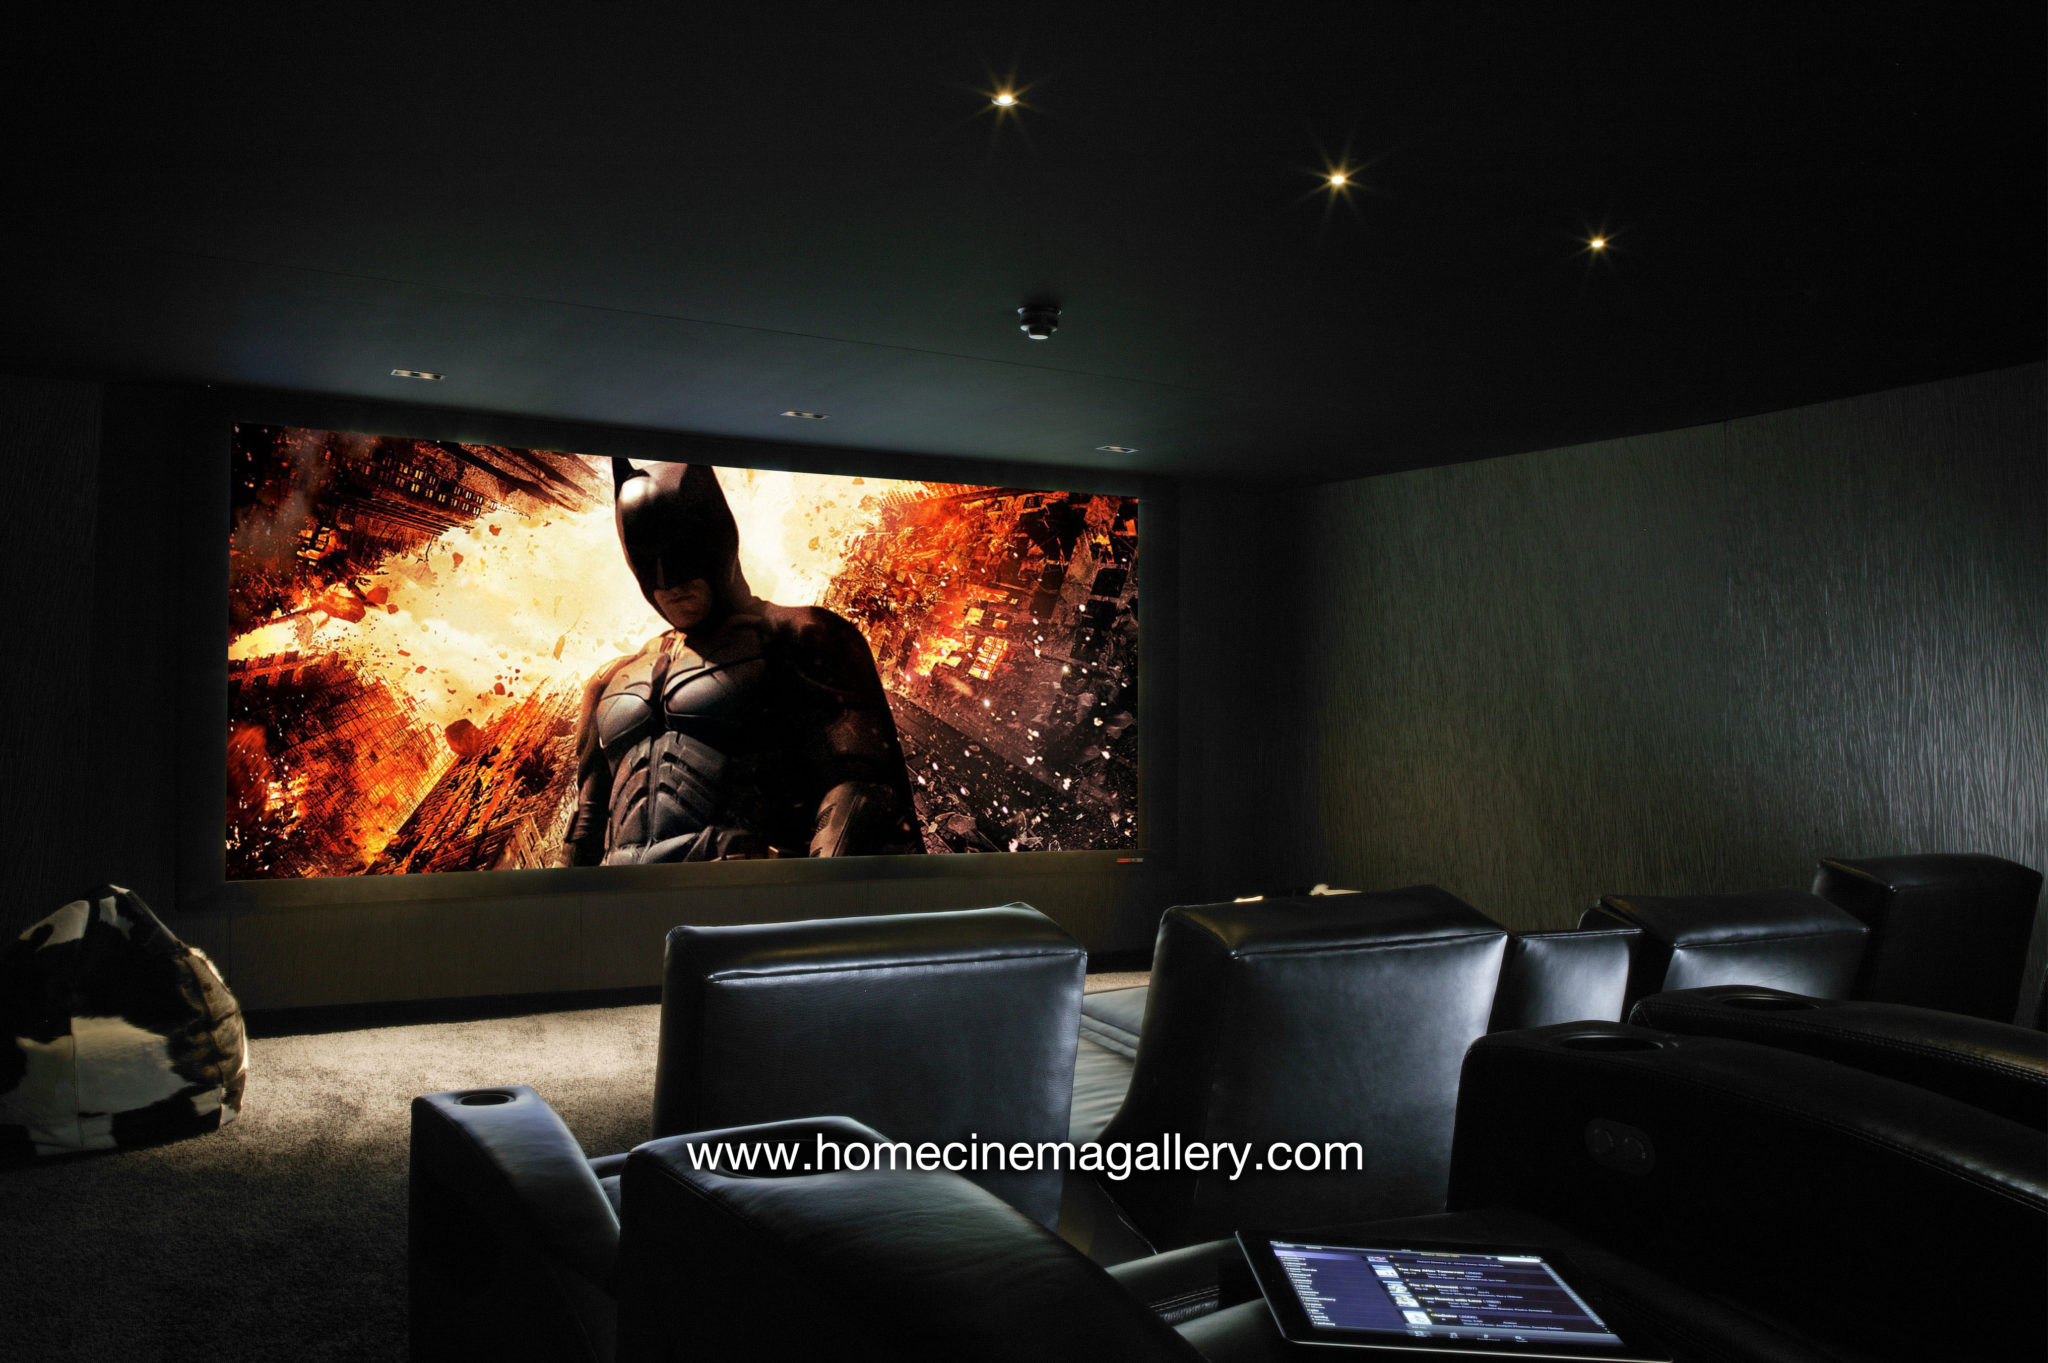 Acoustic solutions for home cinema